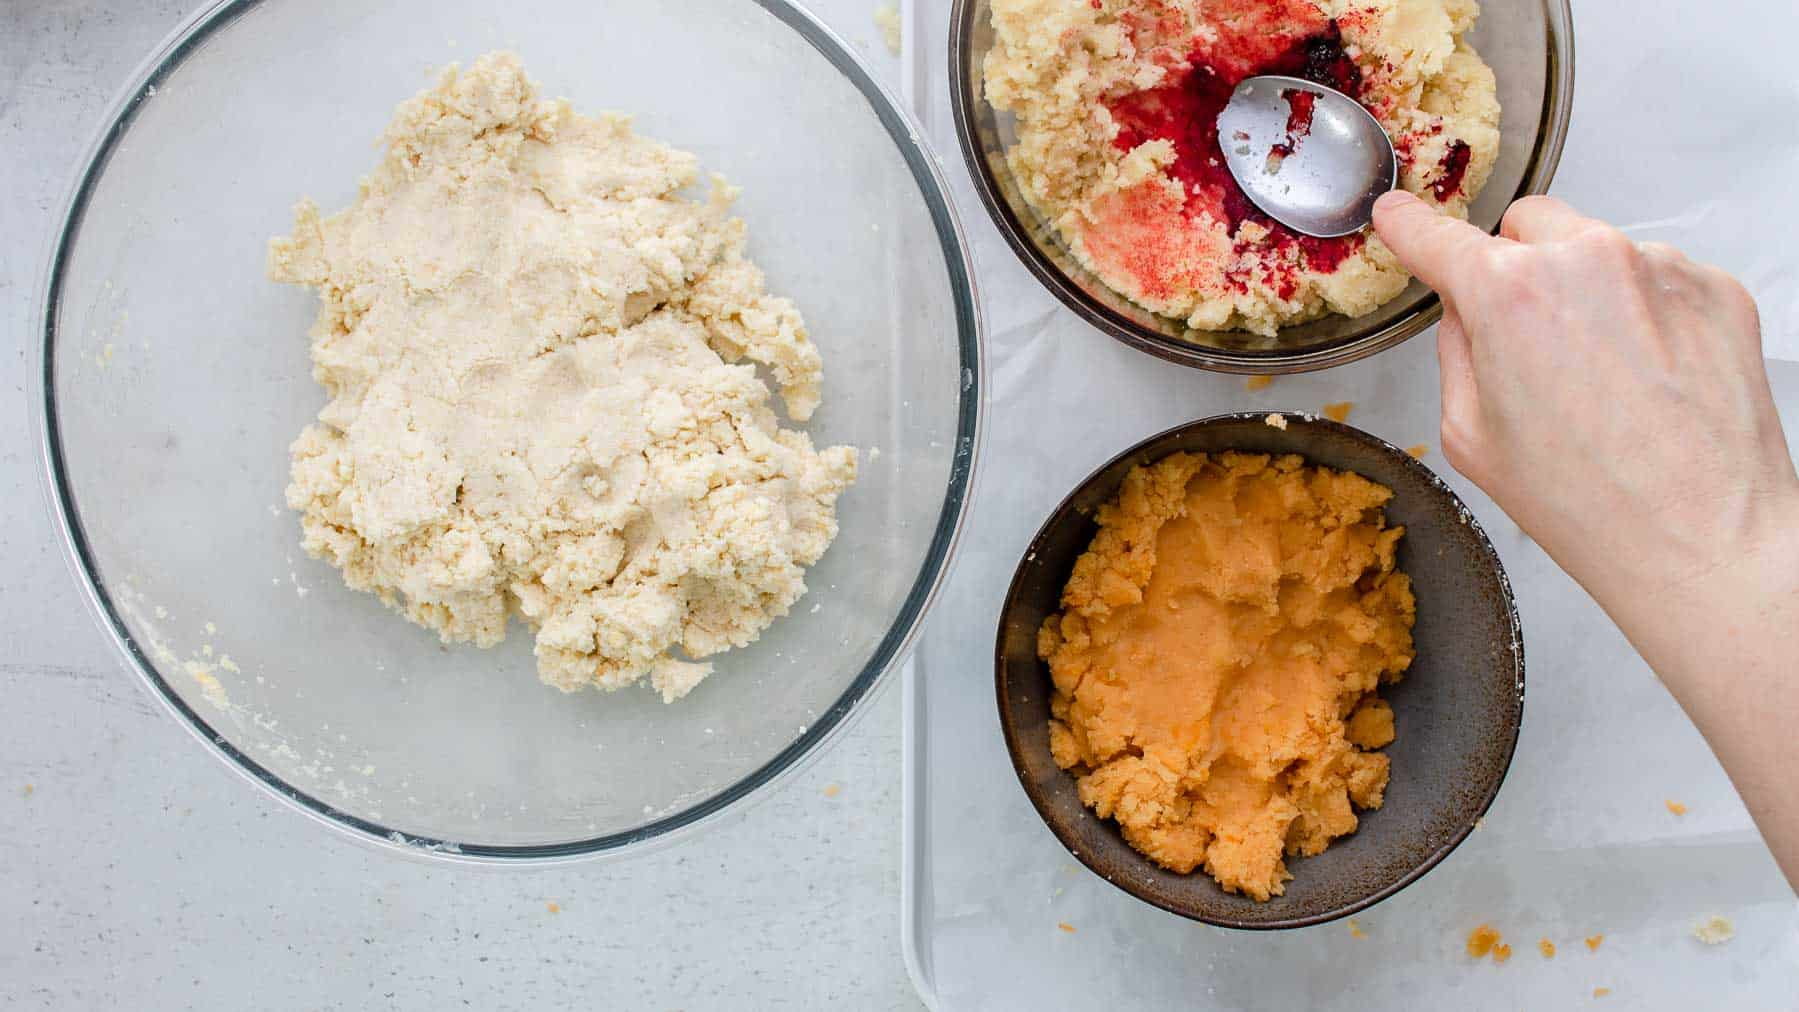 coloring cake crumbles with food coloring